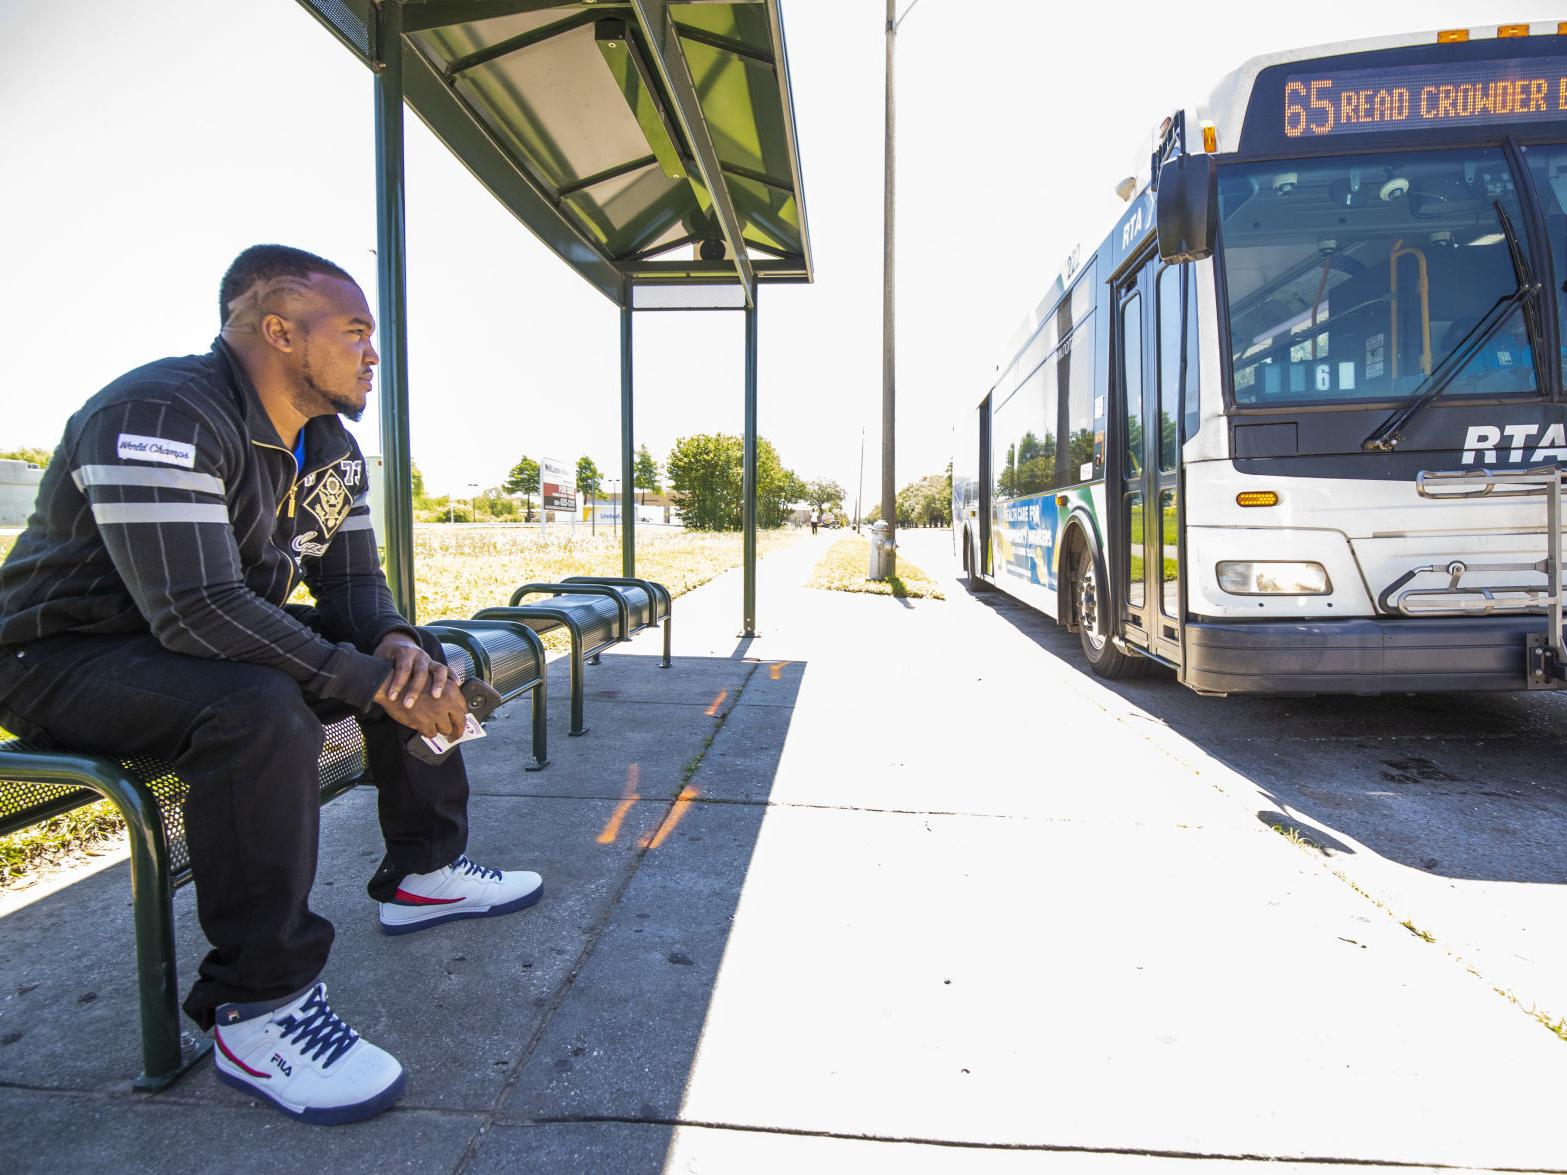 Rta Other Agencies Begin Study Aimed At Potential Redesign Of Regional Transit System Nola Com